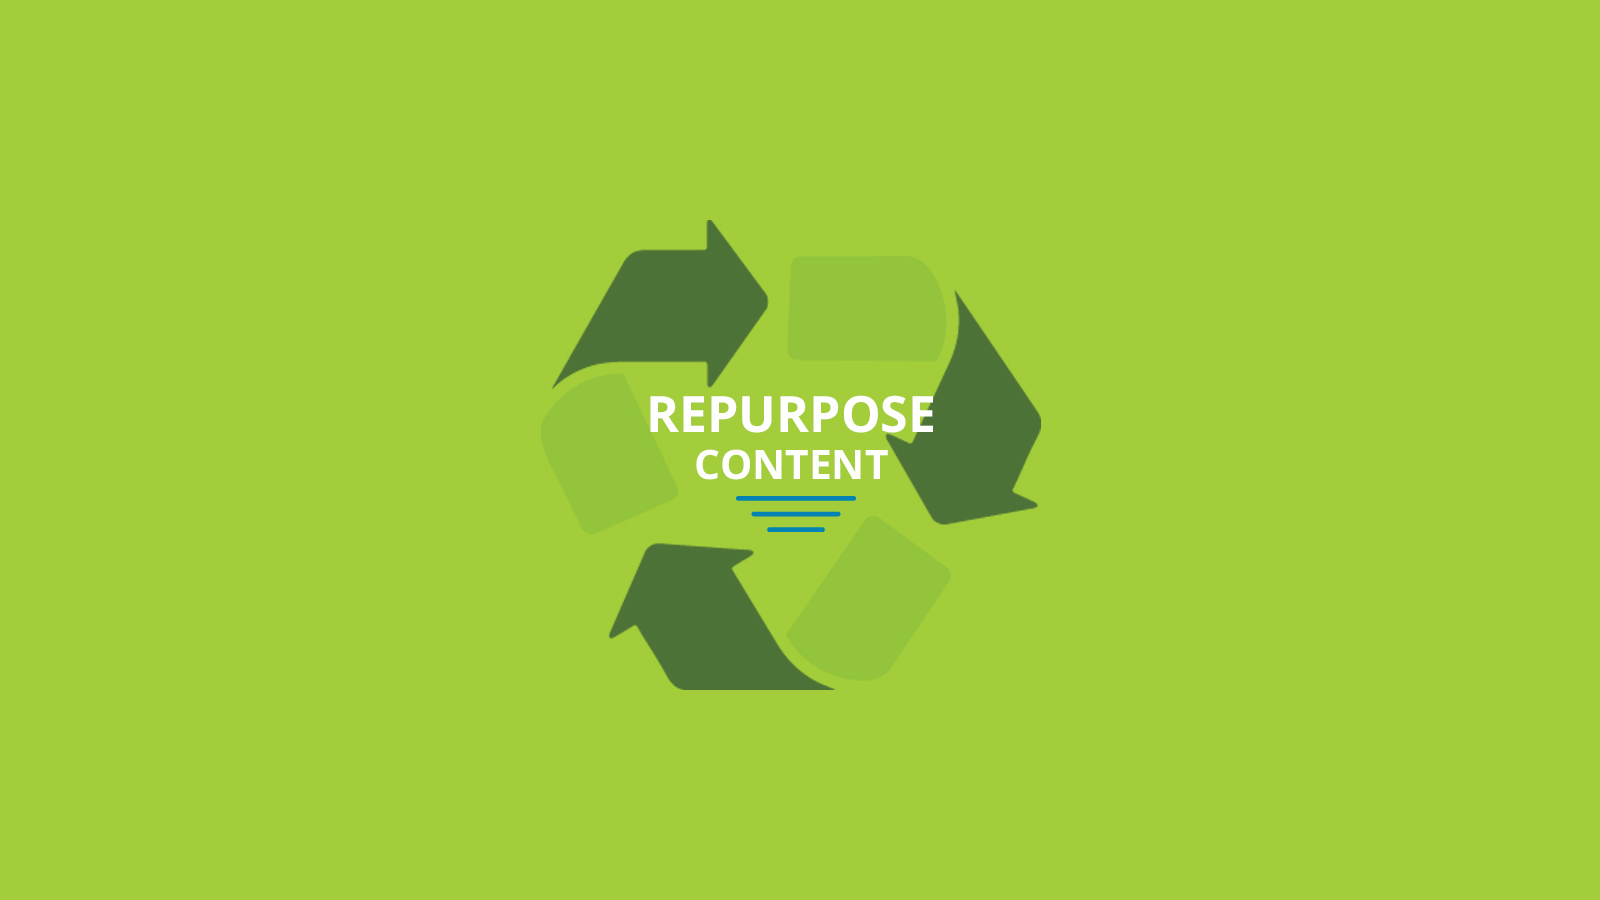 7 Smart Ways to Repurpose Your Content